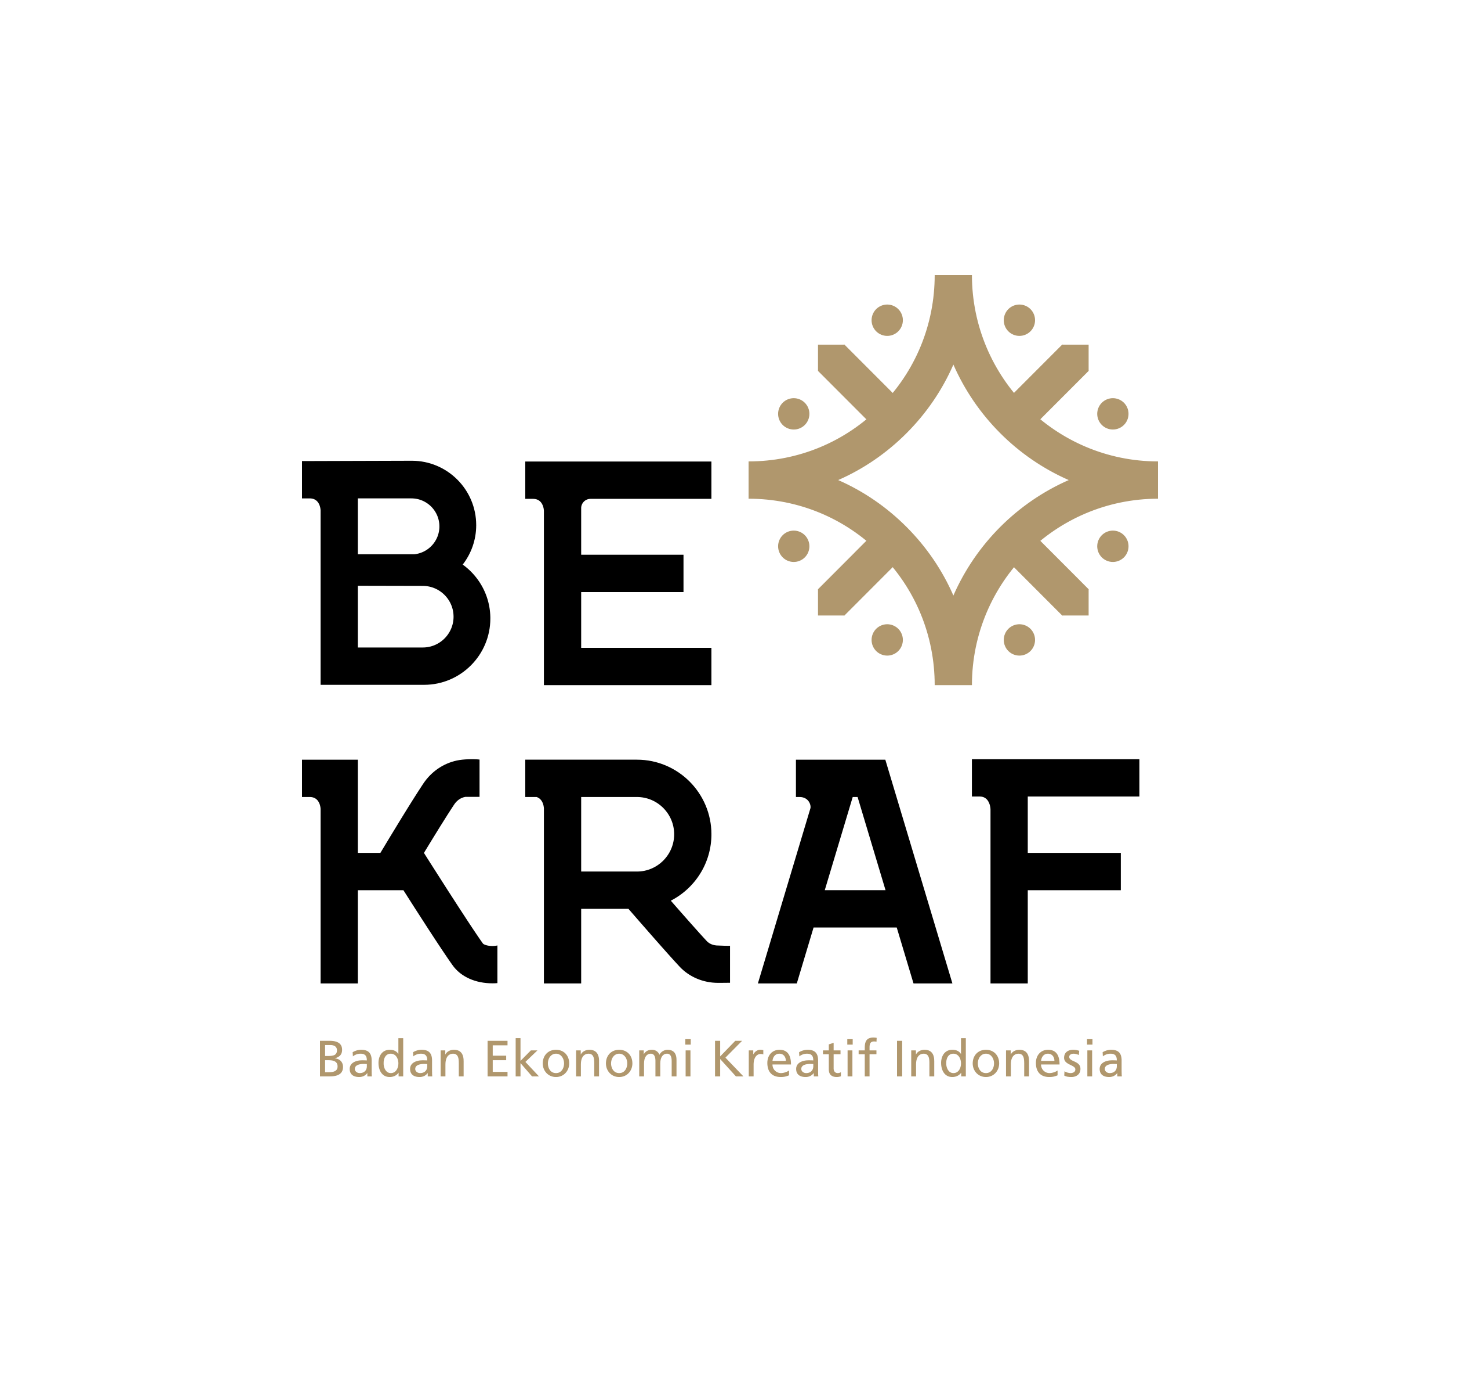 BEKRAF Developer Day 2019 - Purwokerto